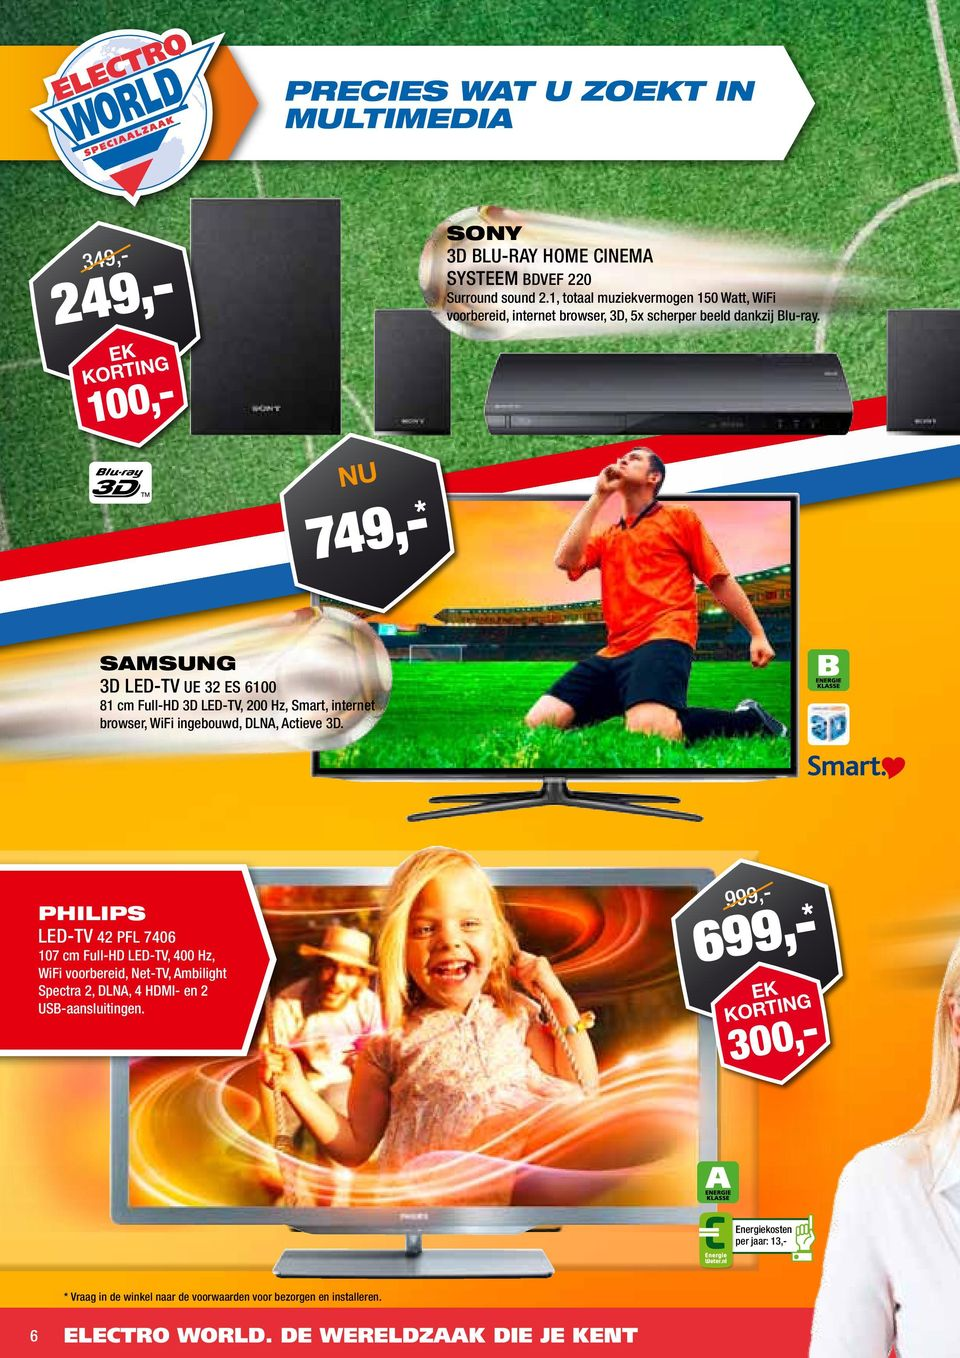 N KRTI 100 74 Samsung 3D LED-TV UE 32 ES 6100 81 cm Full-HD 3D LED-TV 200 Hz Smart internet browser WiFi ingebouwd DLNA Actieve 3D.